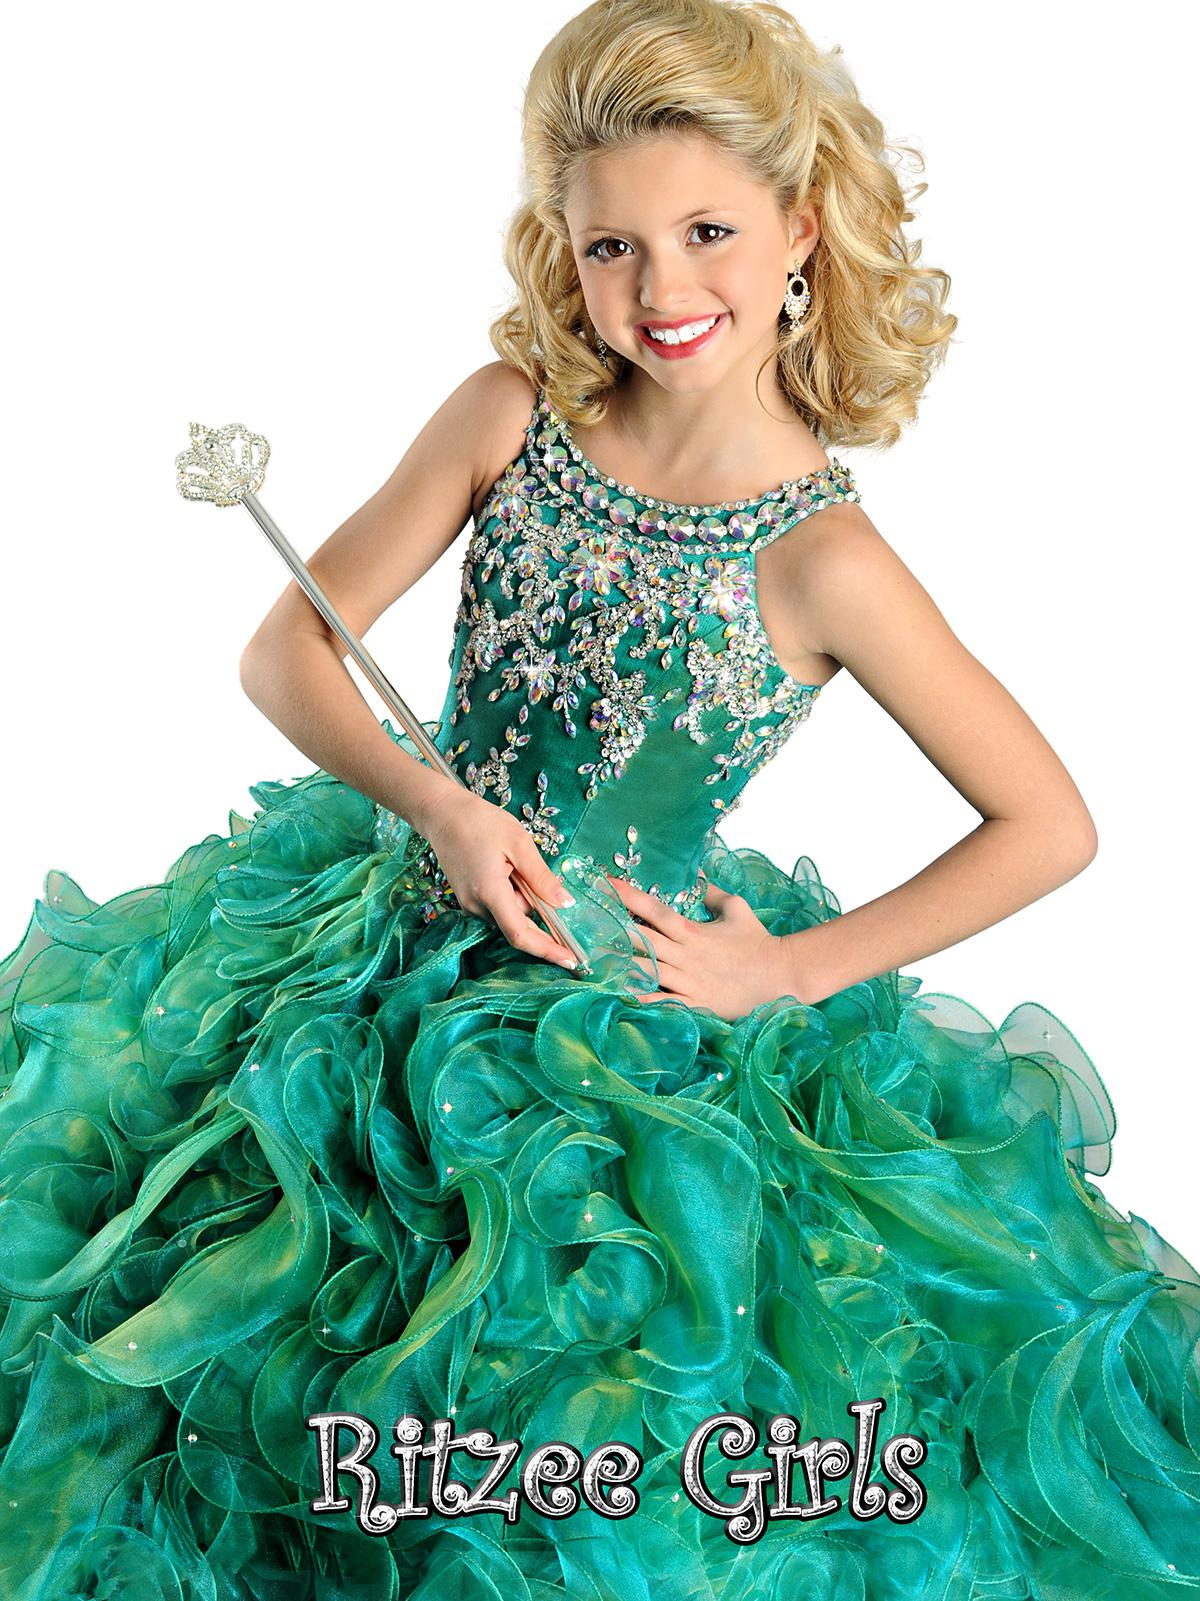 2014 New Arrivals Spaghetti Beads Ballgown spaghetti kids Party Prom dresses Ritzee Girls Pageant Dress Style